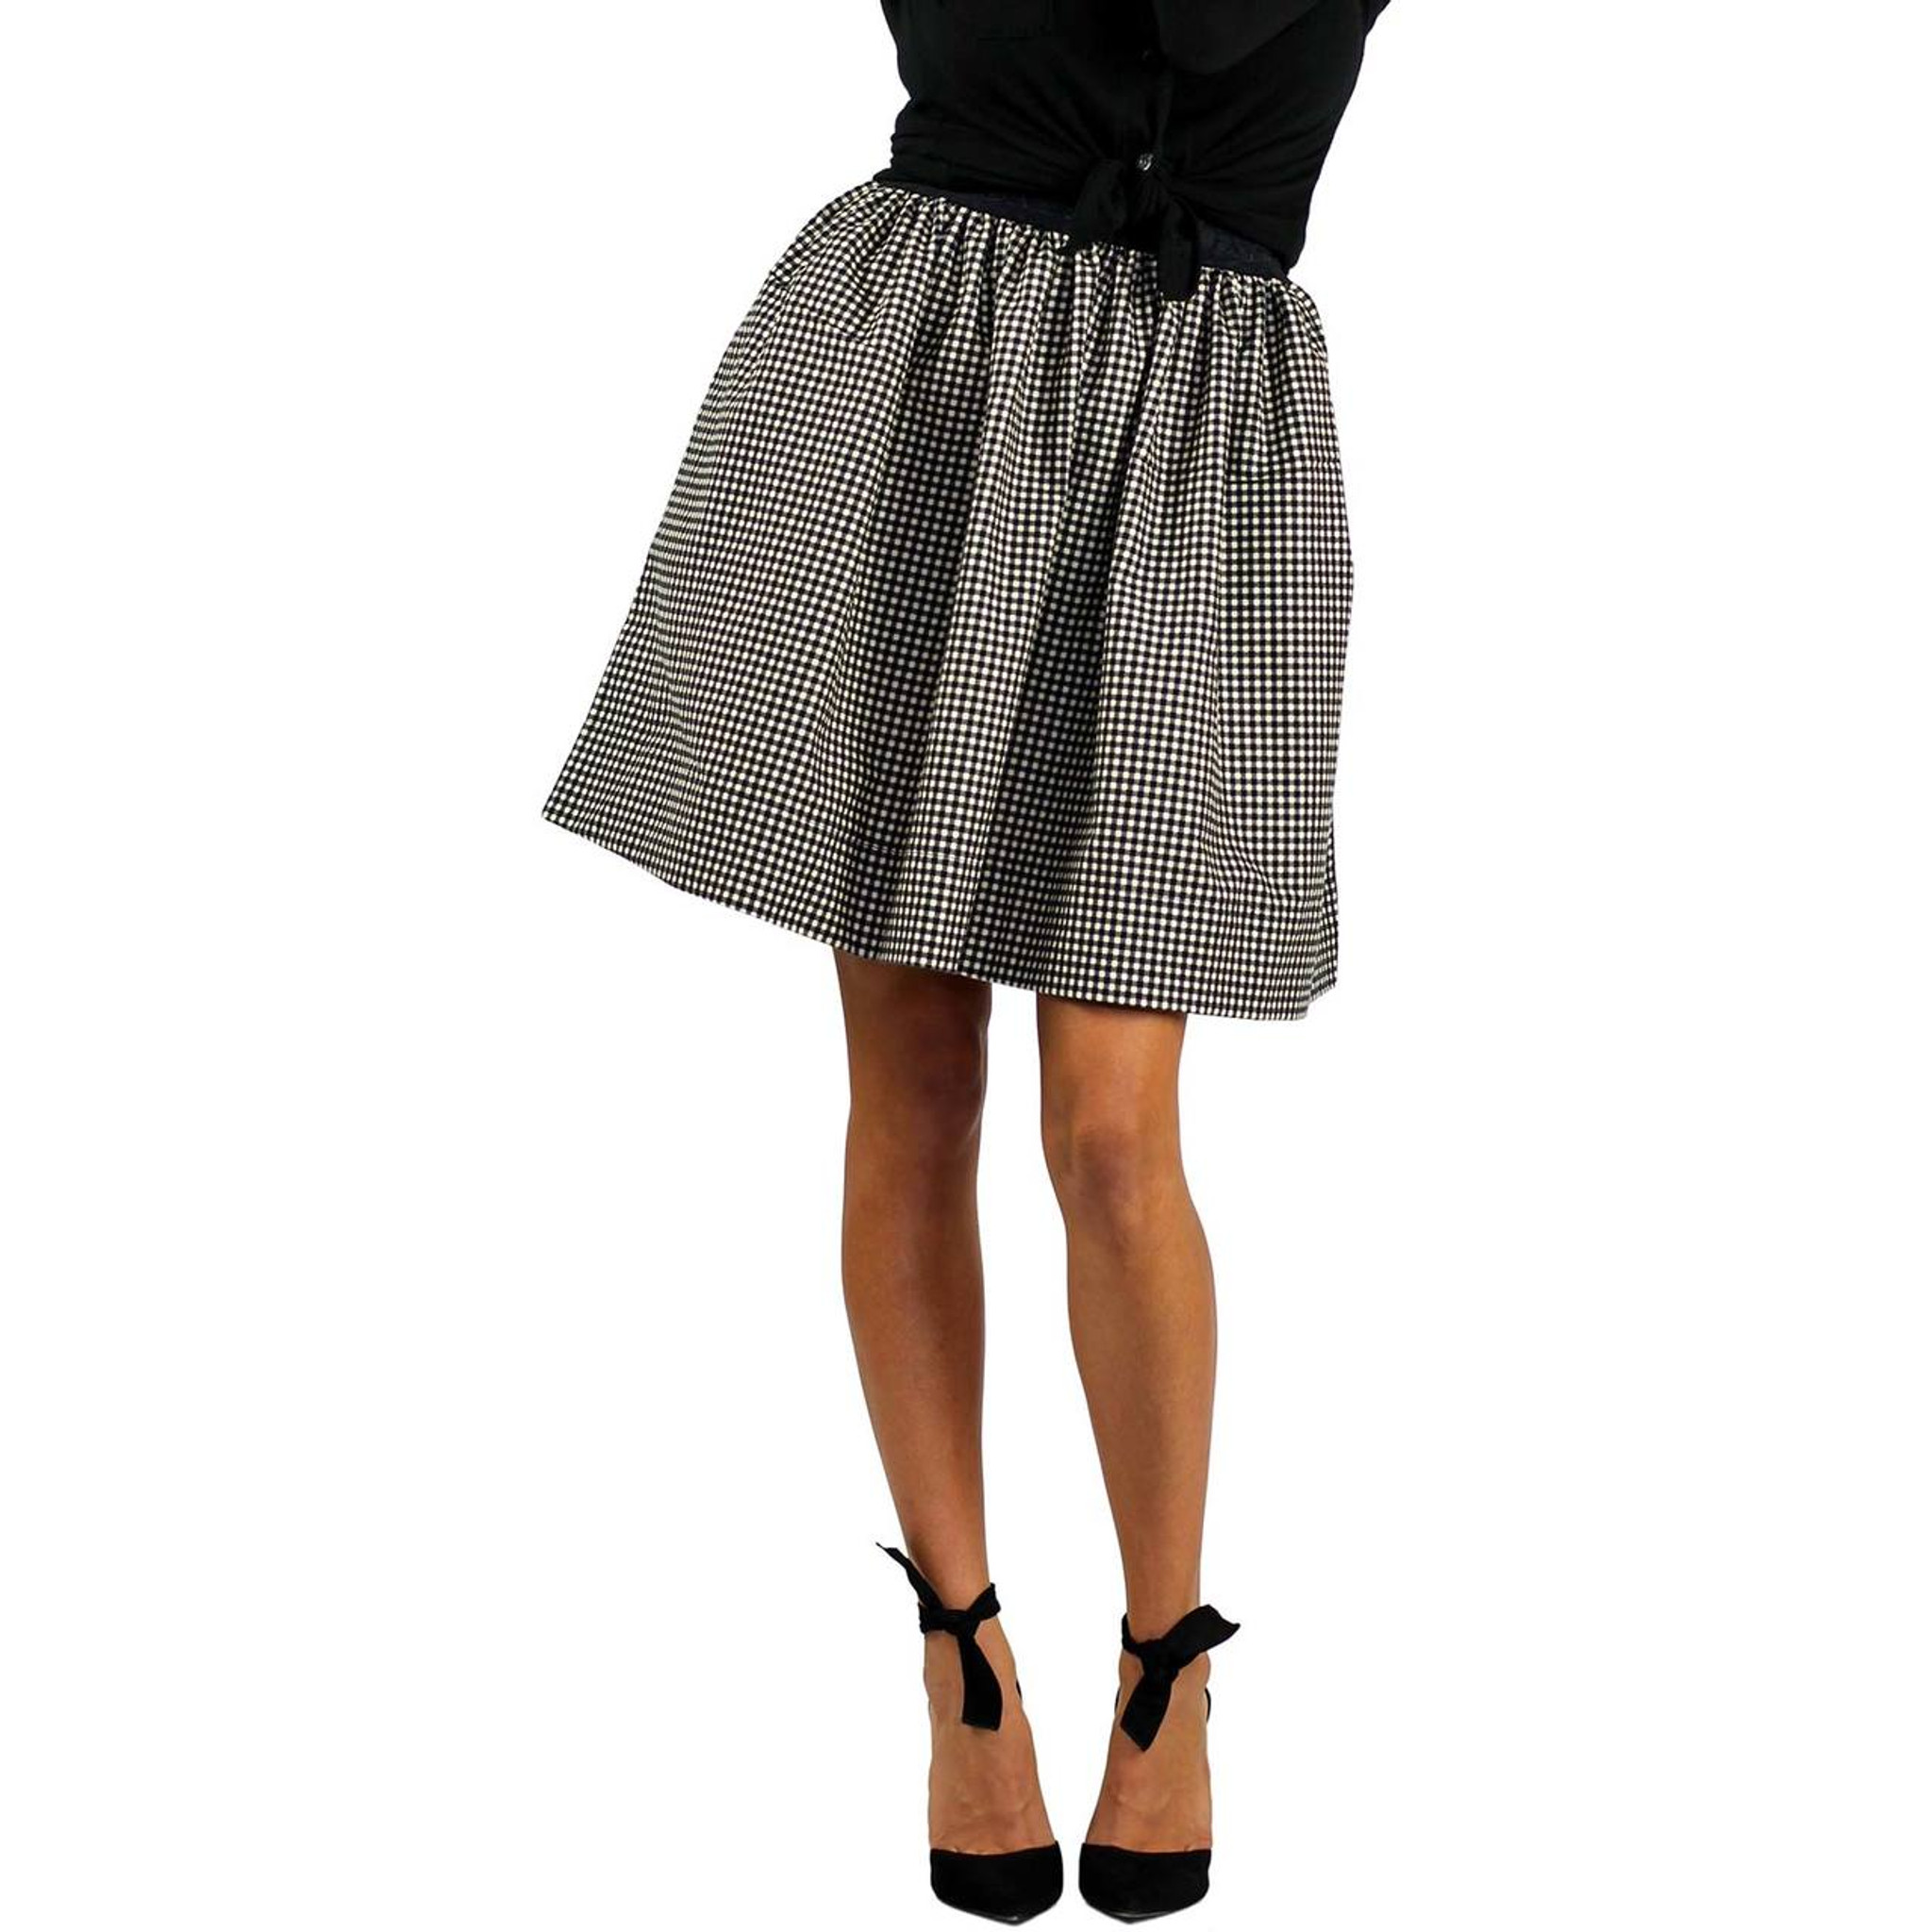 6dcf42bc6 ... Black & White Checkered Plaid Flannel Skirt With Pockets ...